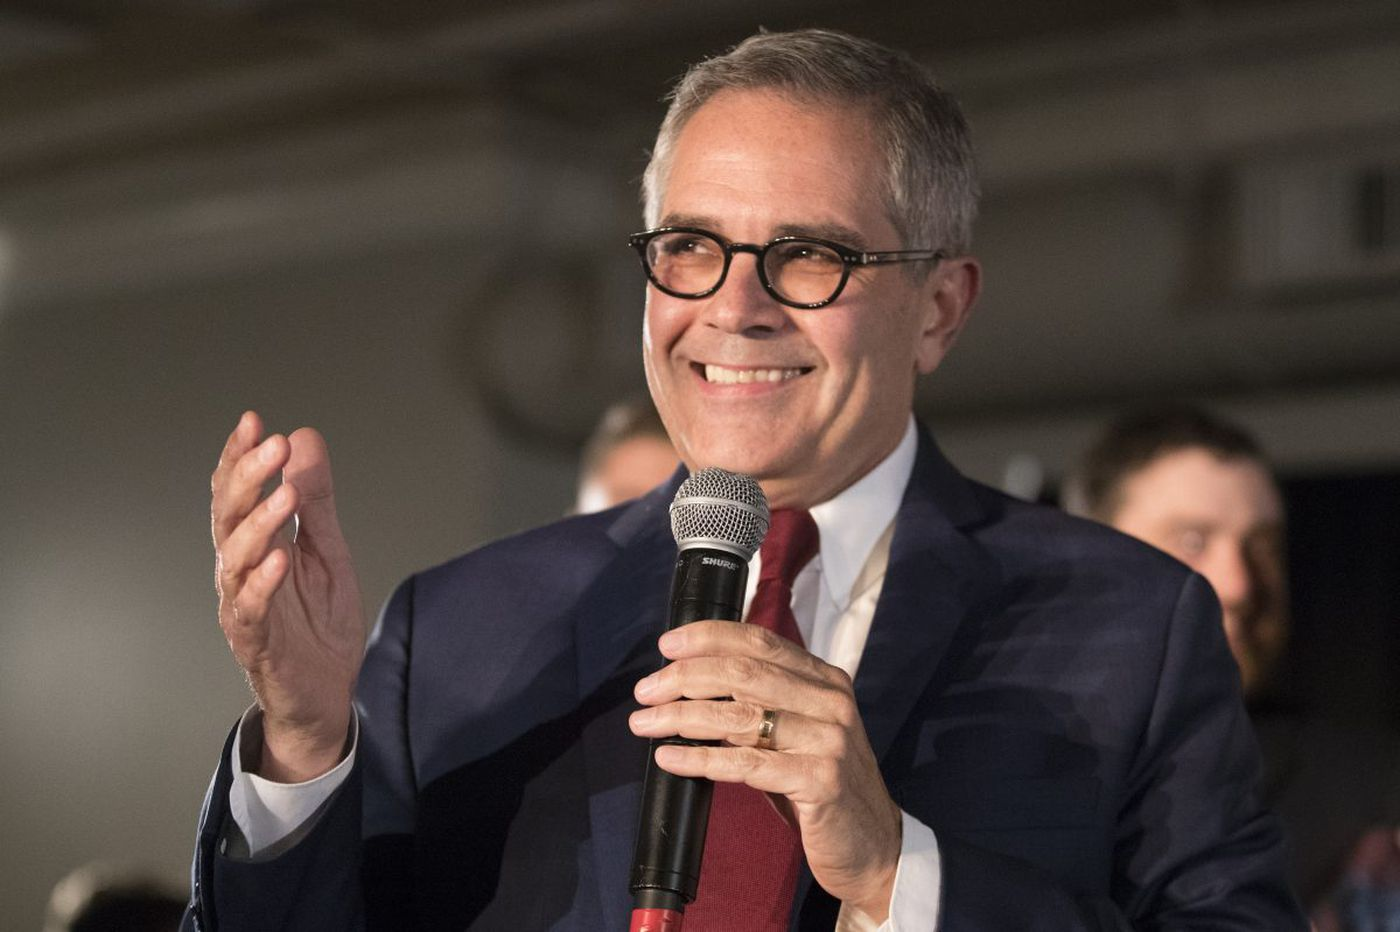 For DA-elect Krasner and FOP, an early thaw in relations?